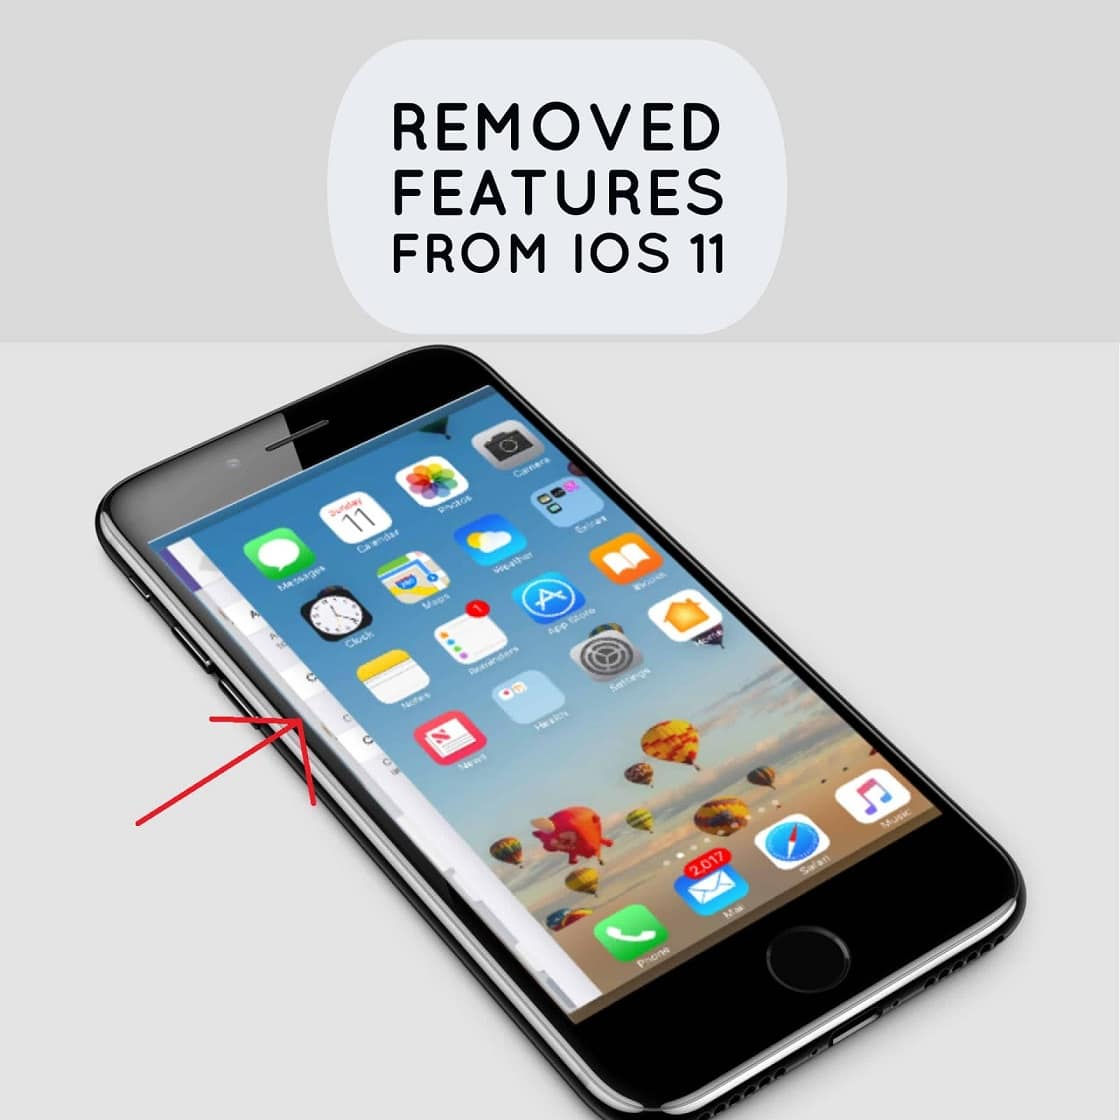 You will not find some features in iOS 11 which existed in previous iOS version. Let's check out 6 iOS features that Apple has removed from iOS 11.